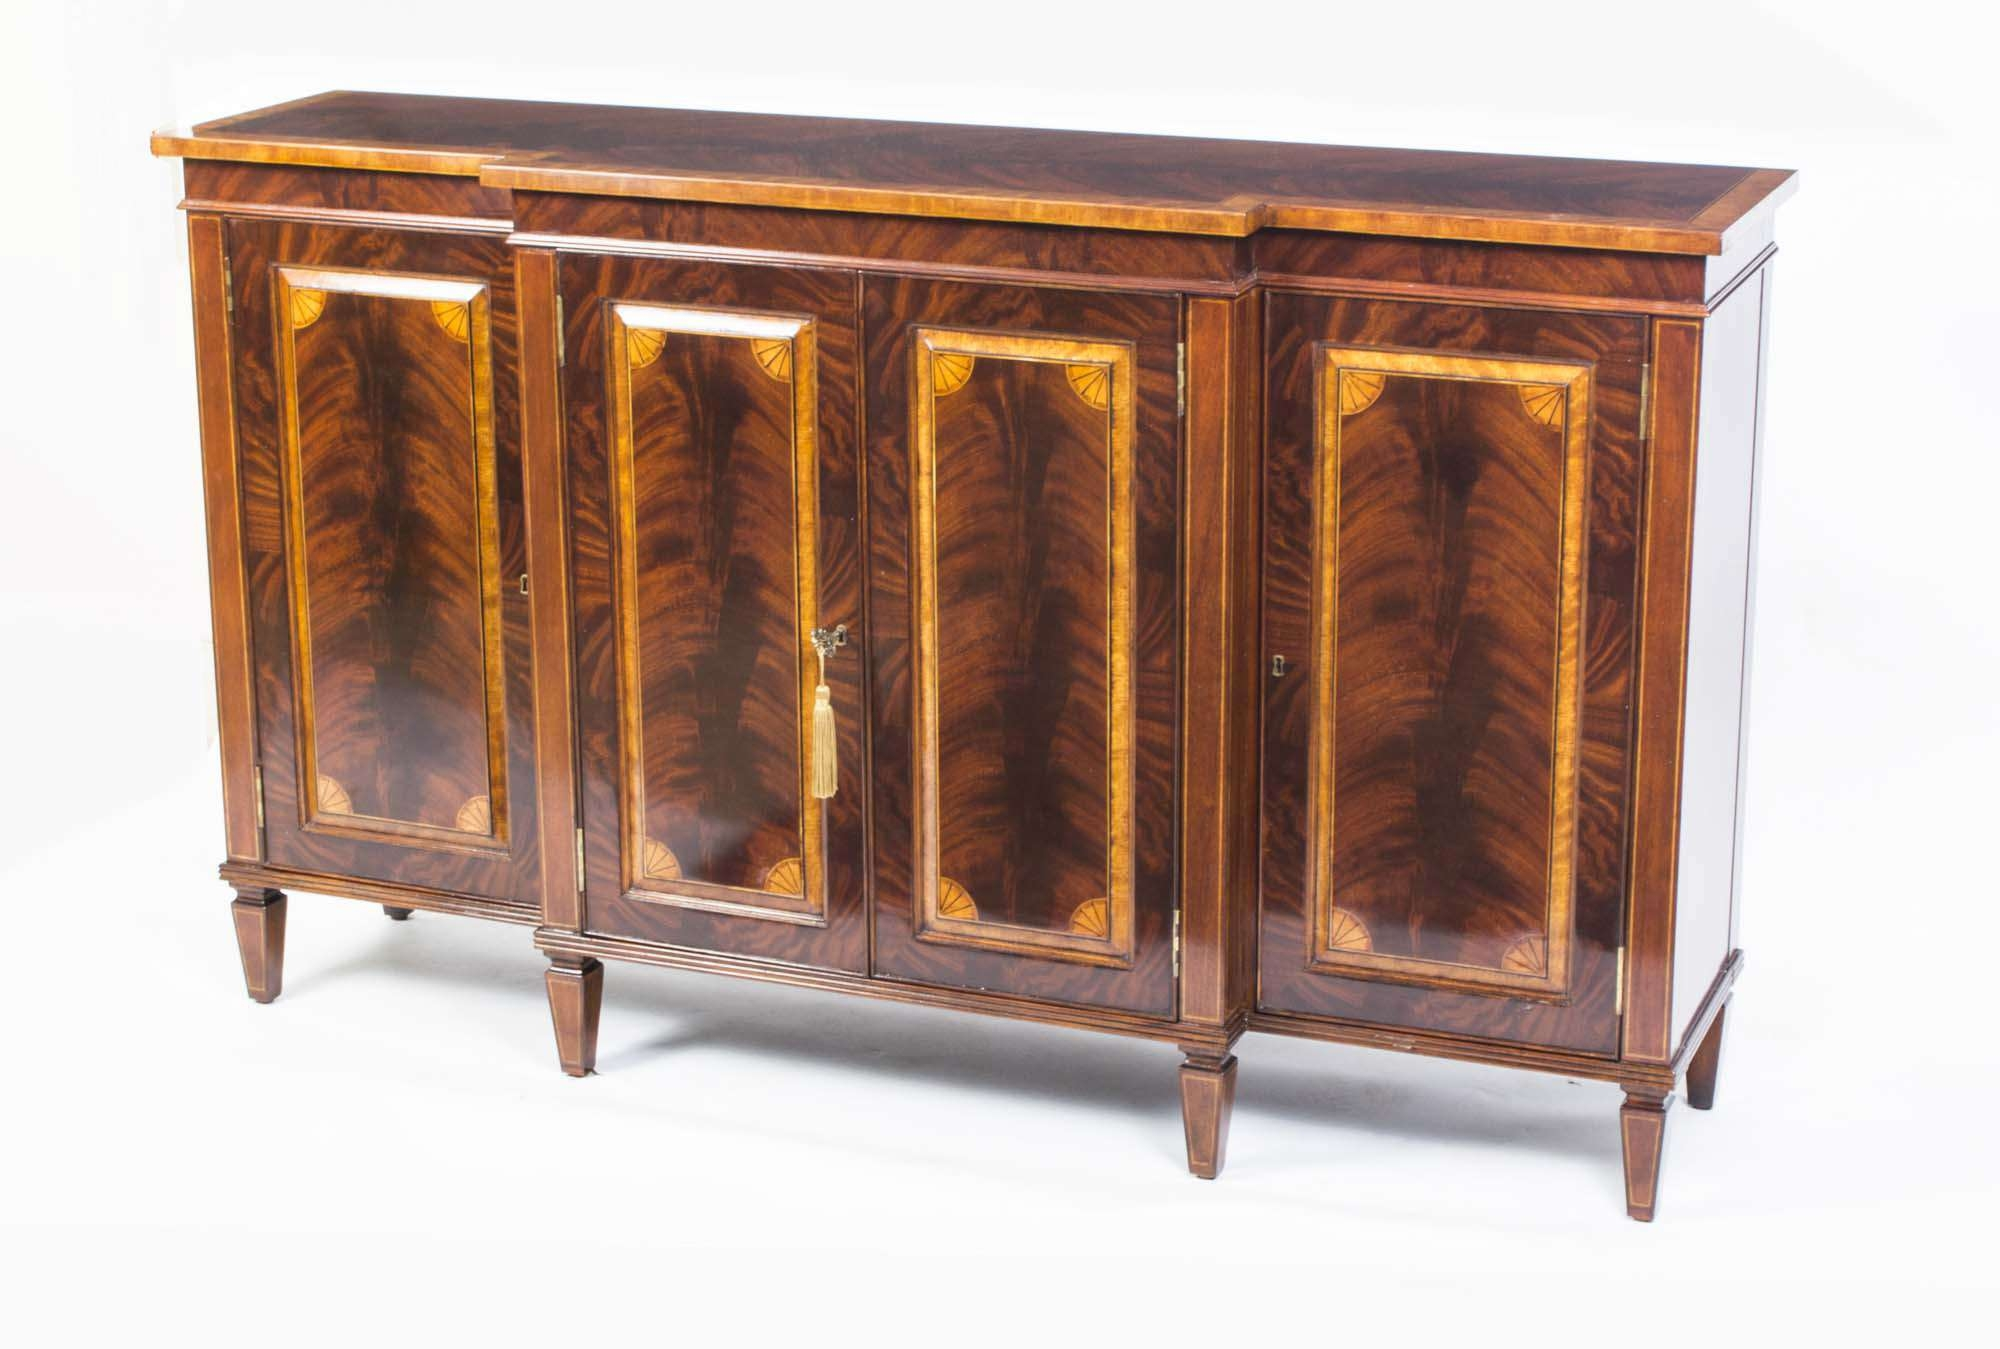 New Credenzas And Sideboards – Bjdgjy In Credenza Sideboards (View 11 of 20)